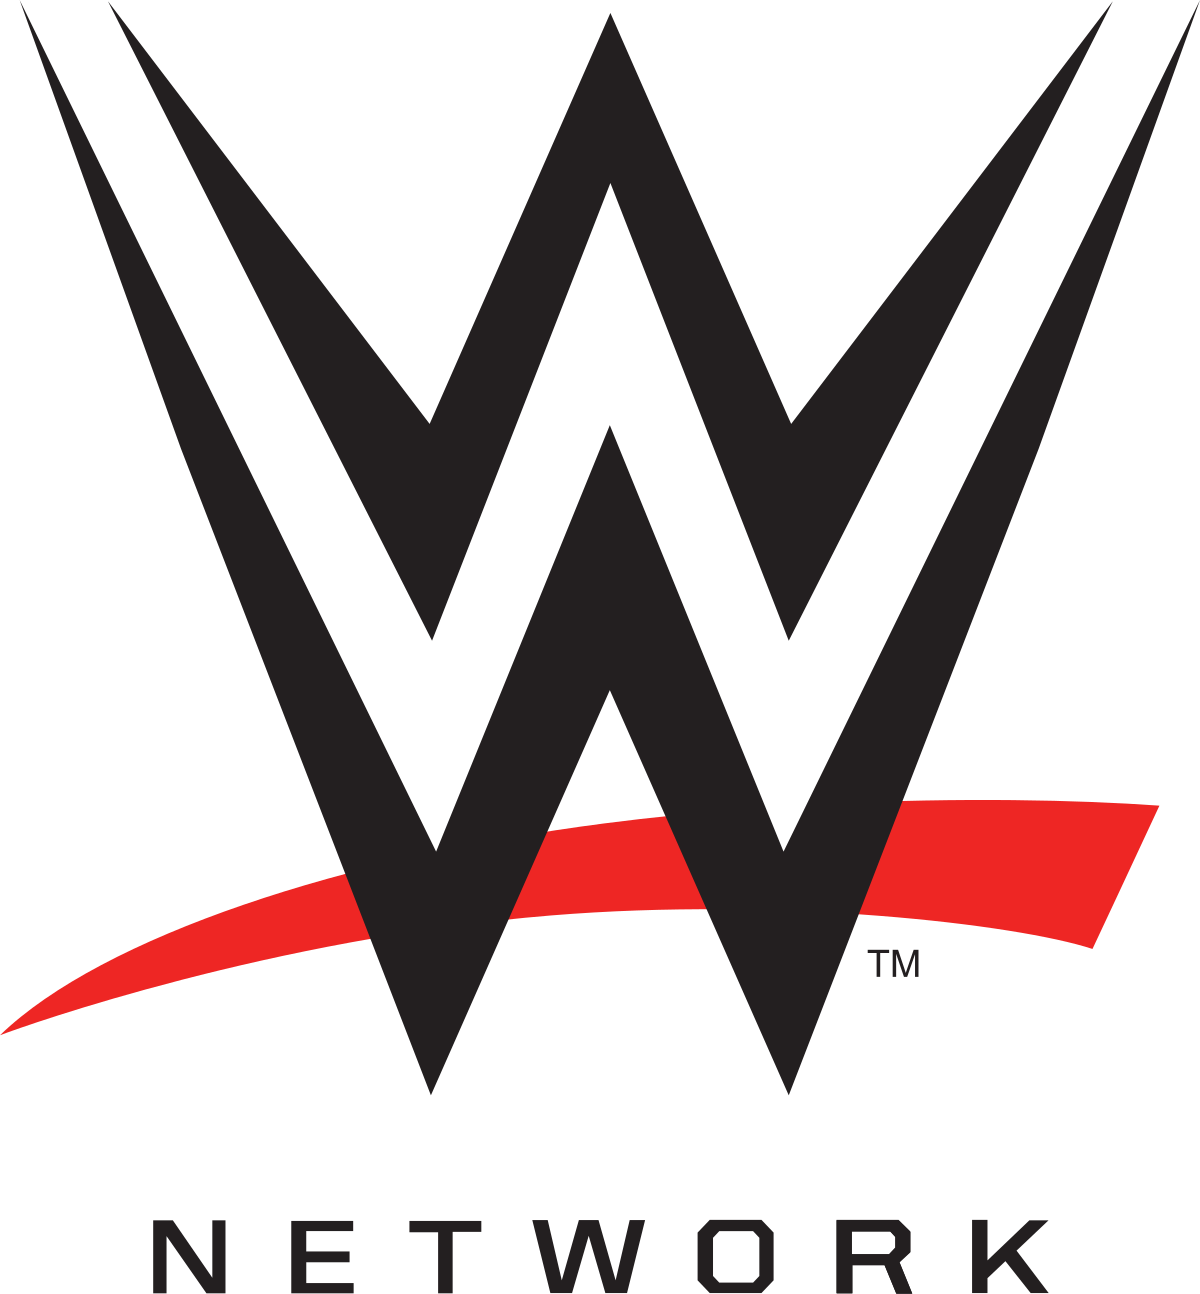 Télécharger photo wwe network logo png